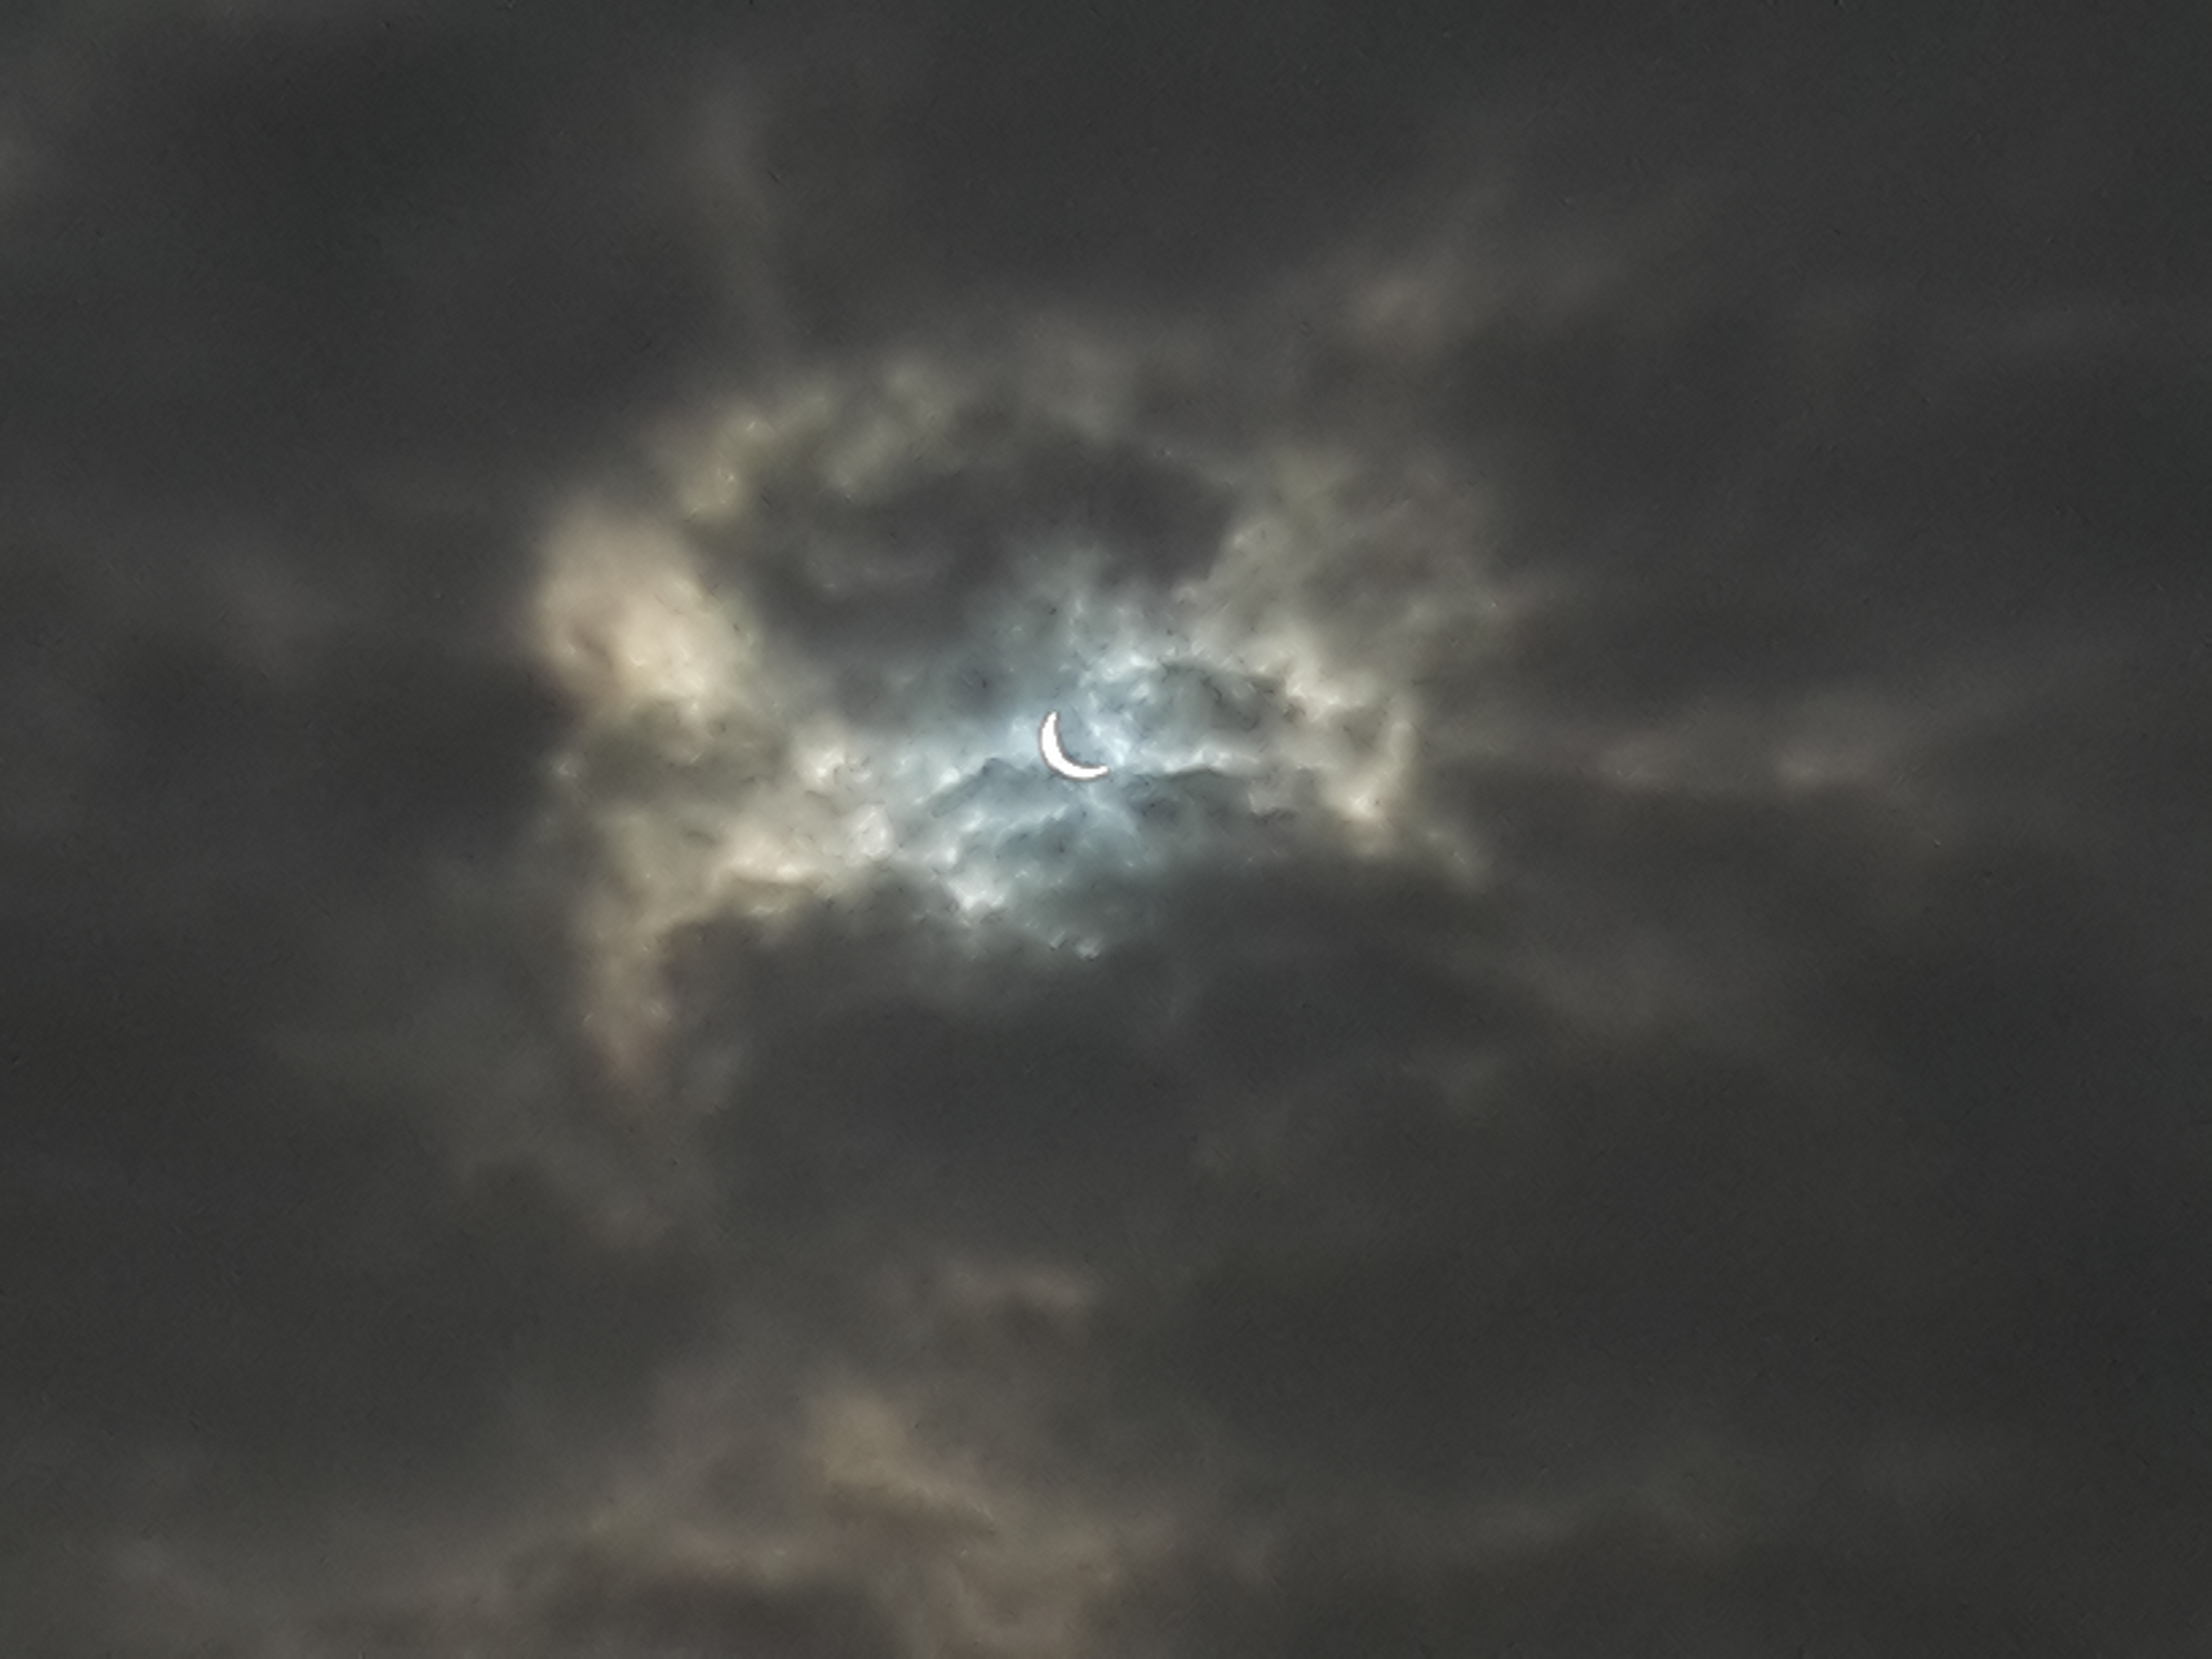 Solar eclipse in March 2015 at Preston. Image credit: Timo Laitinen